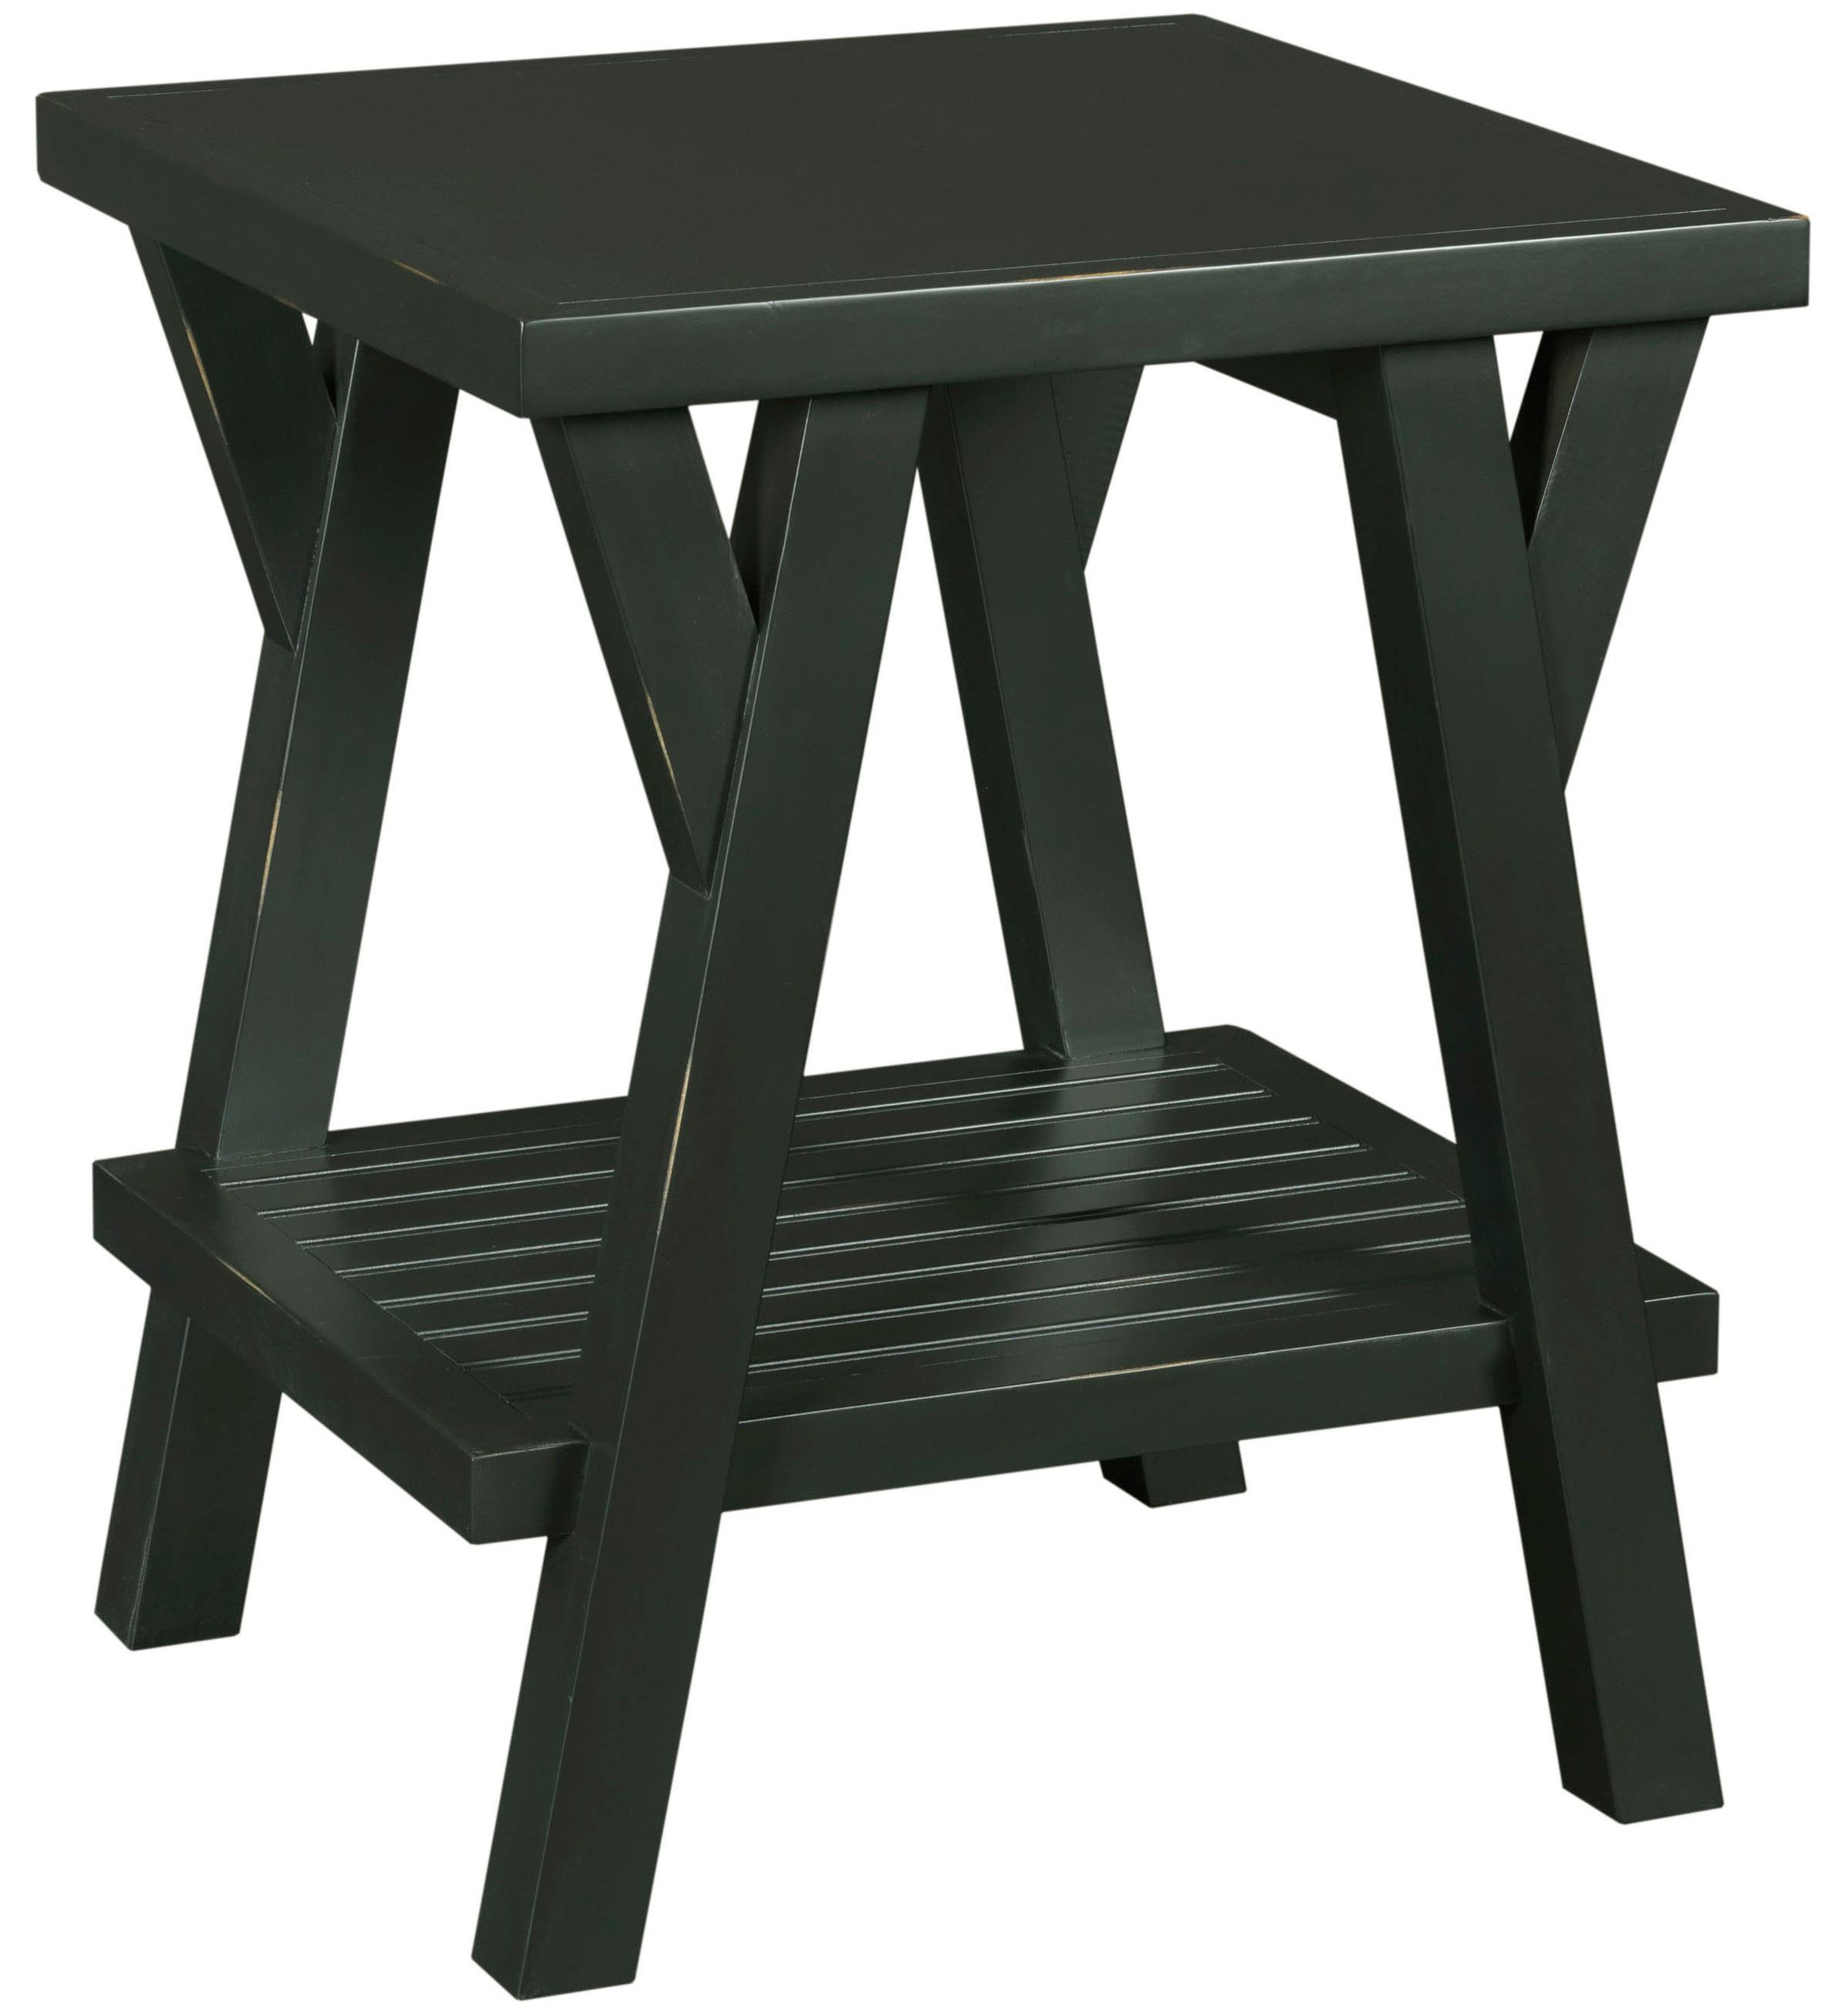 Broyhill Furniture New Vintage Splay Leg End Table - Item Number: 4809-000